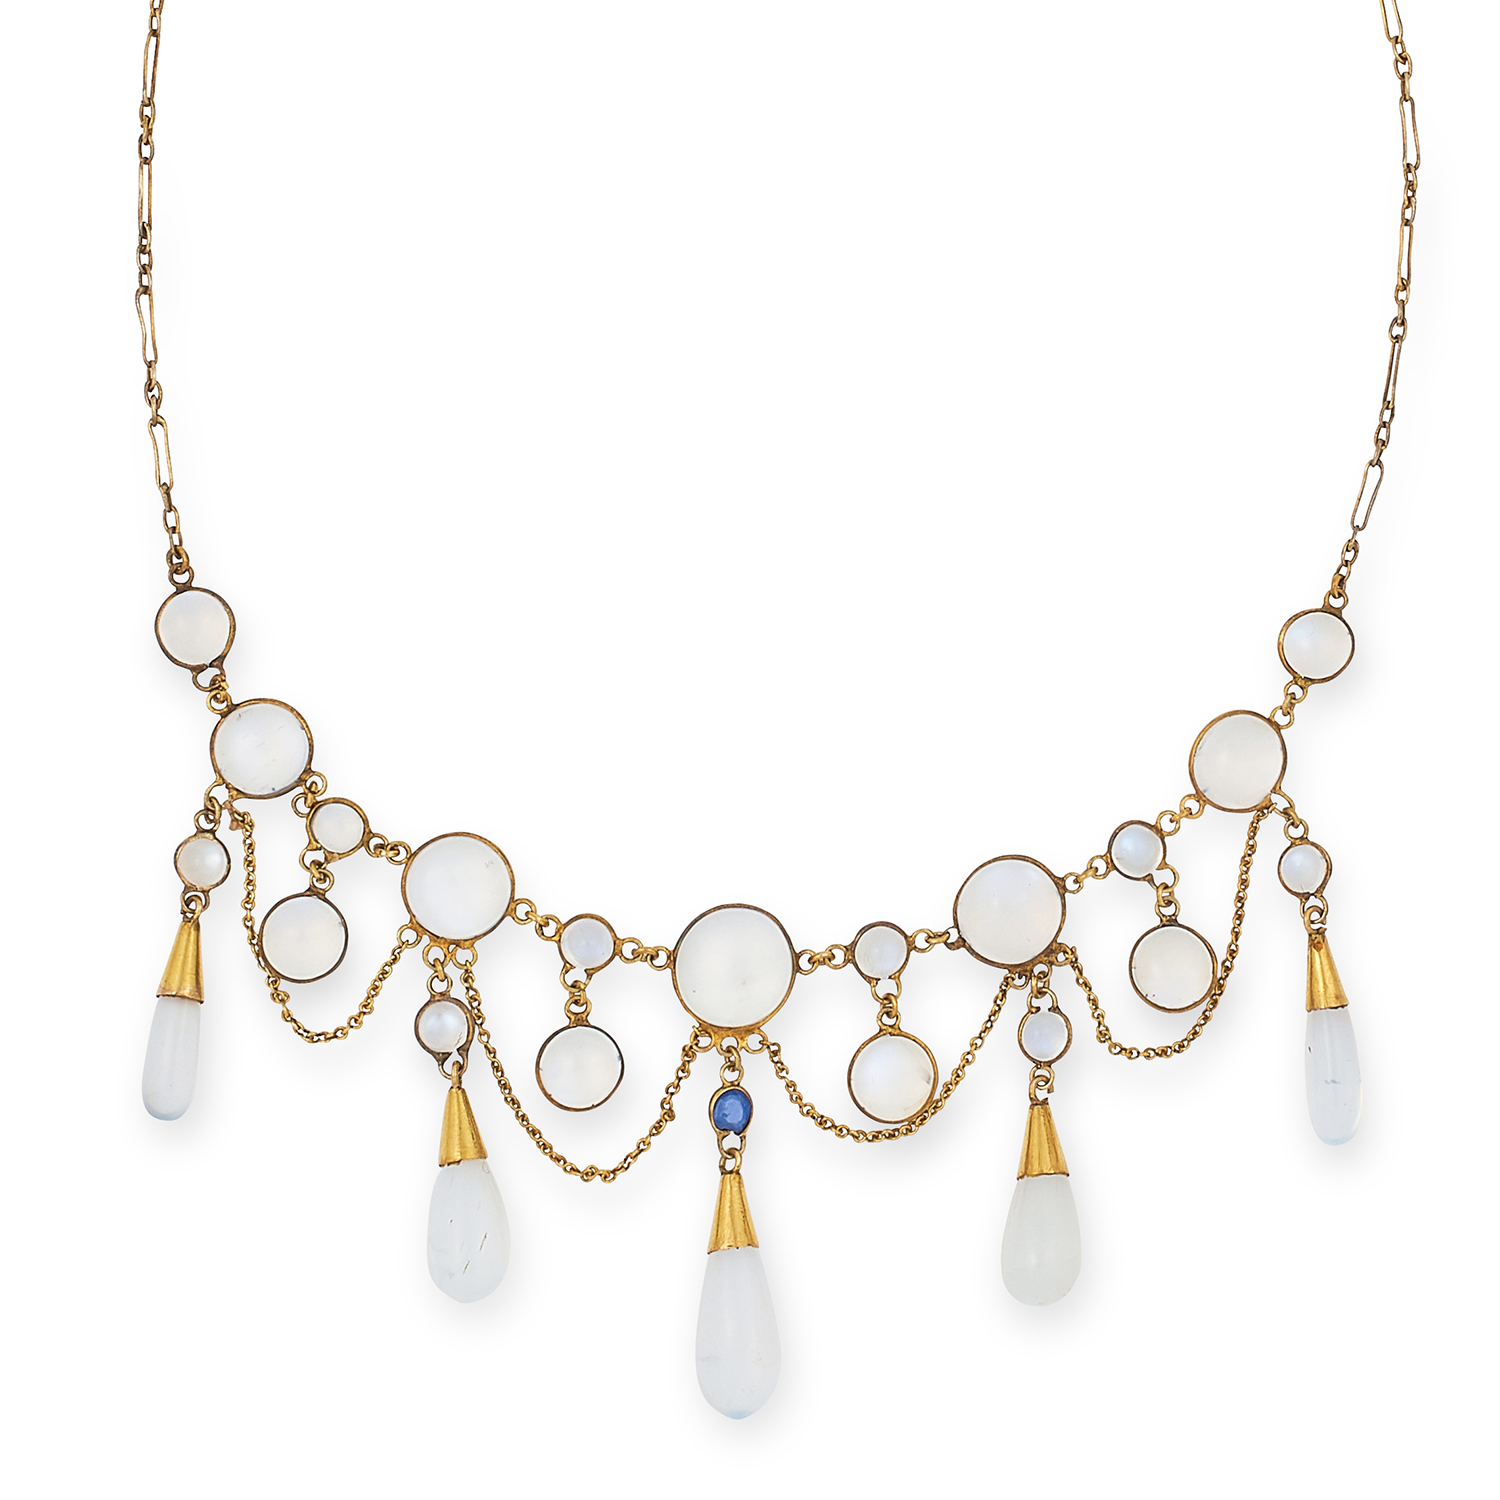 Los 34 - ANTIQUE MOONSTONE AND SAPPHIRE NECKLACE set with a round cut sapphire, cabochon moonstone and